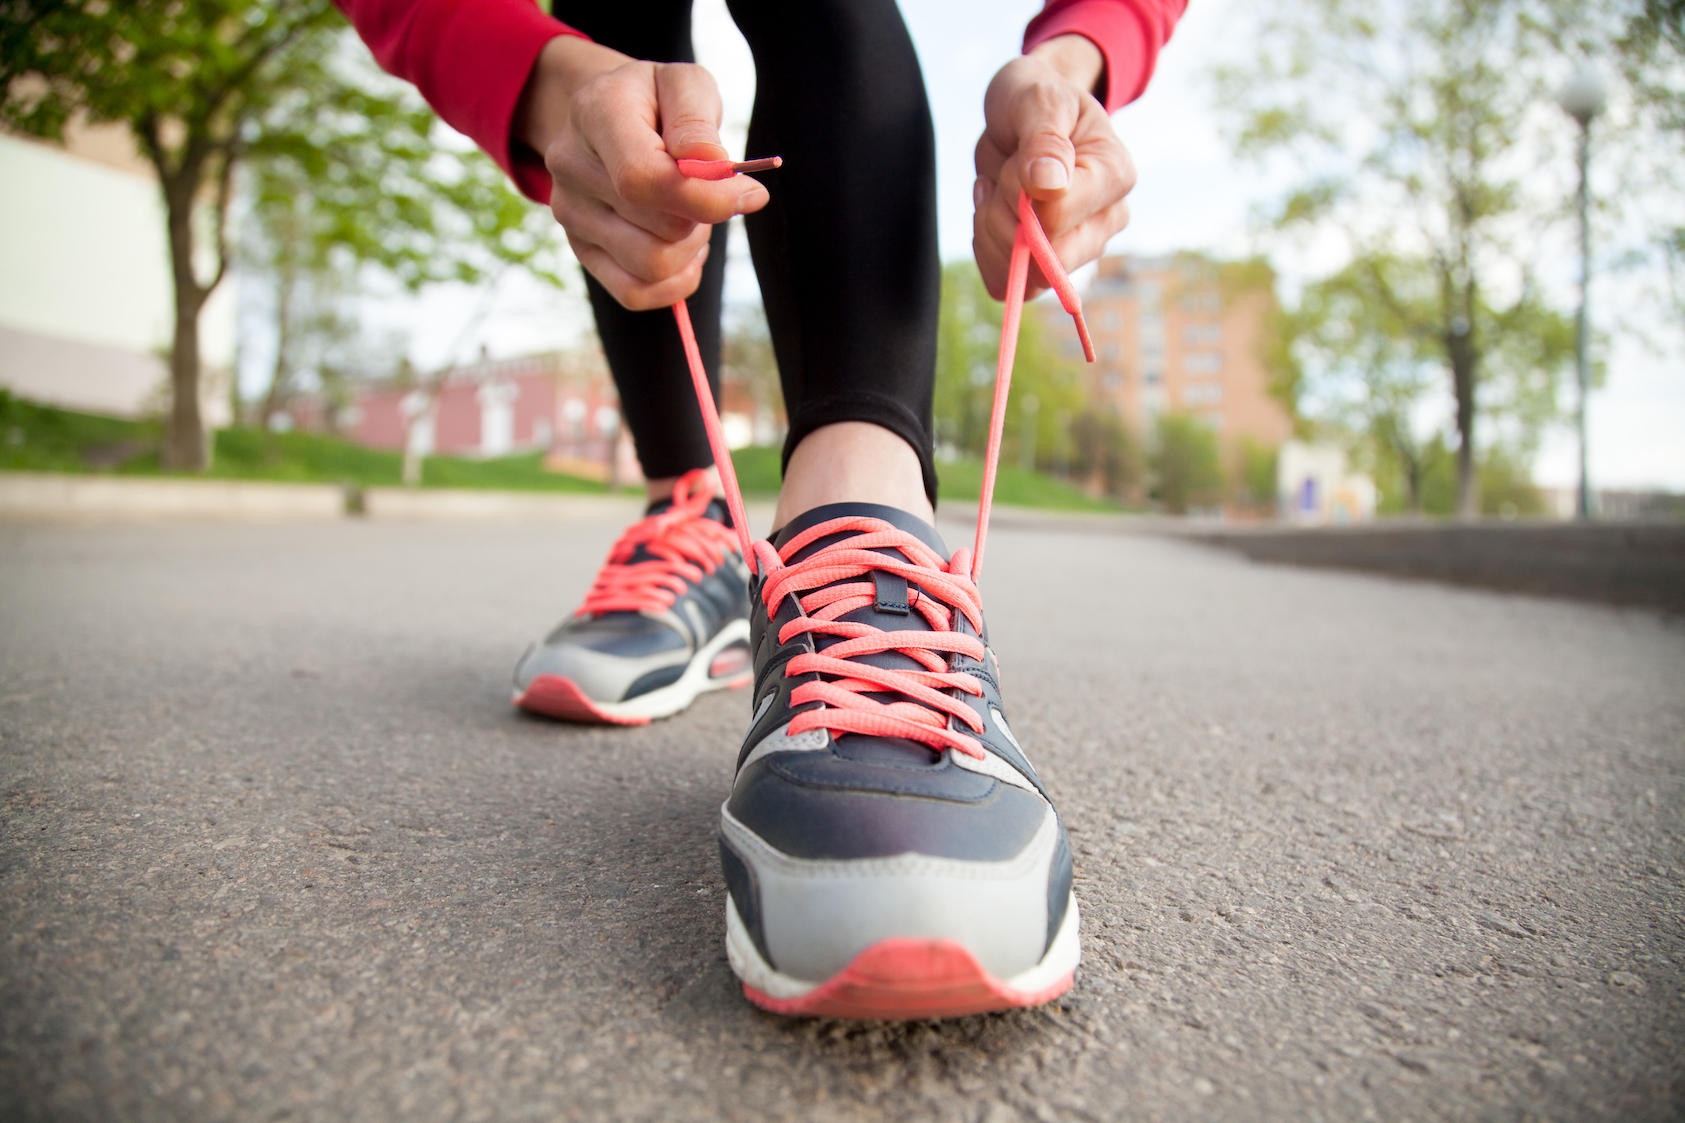 Scientists at University California Berkeley have finally explained the reason why shoelaces come untied so often.